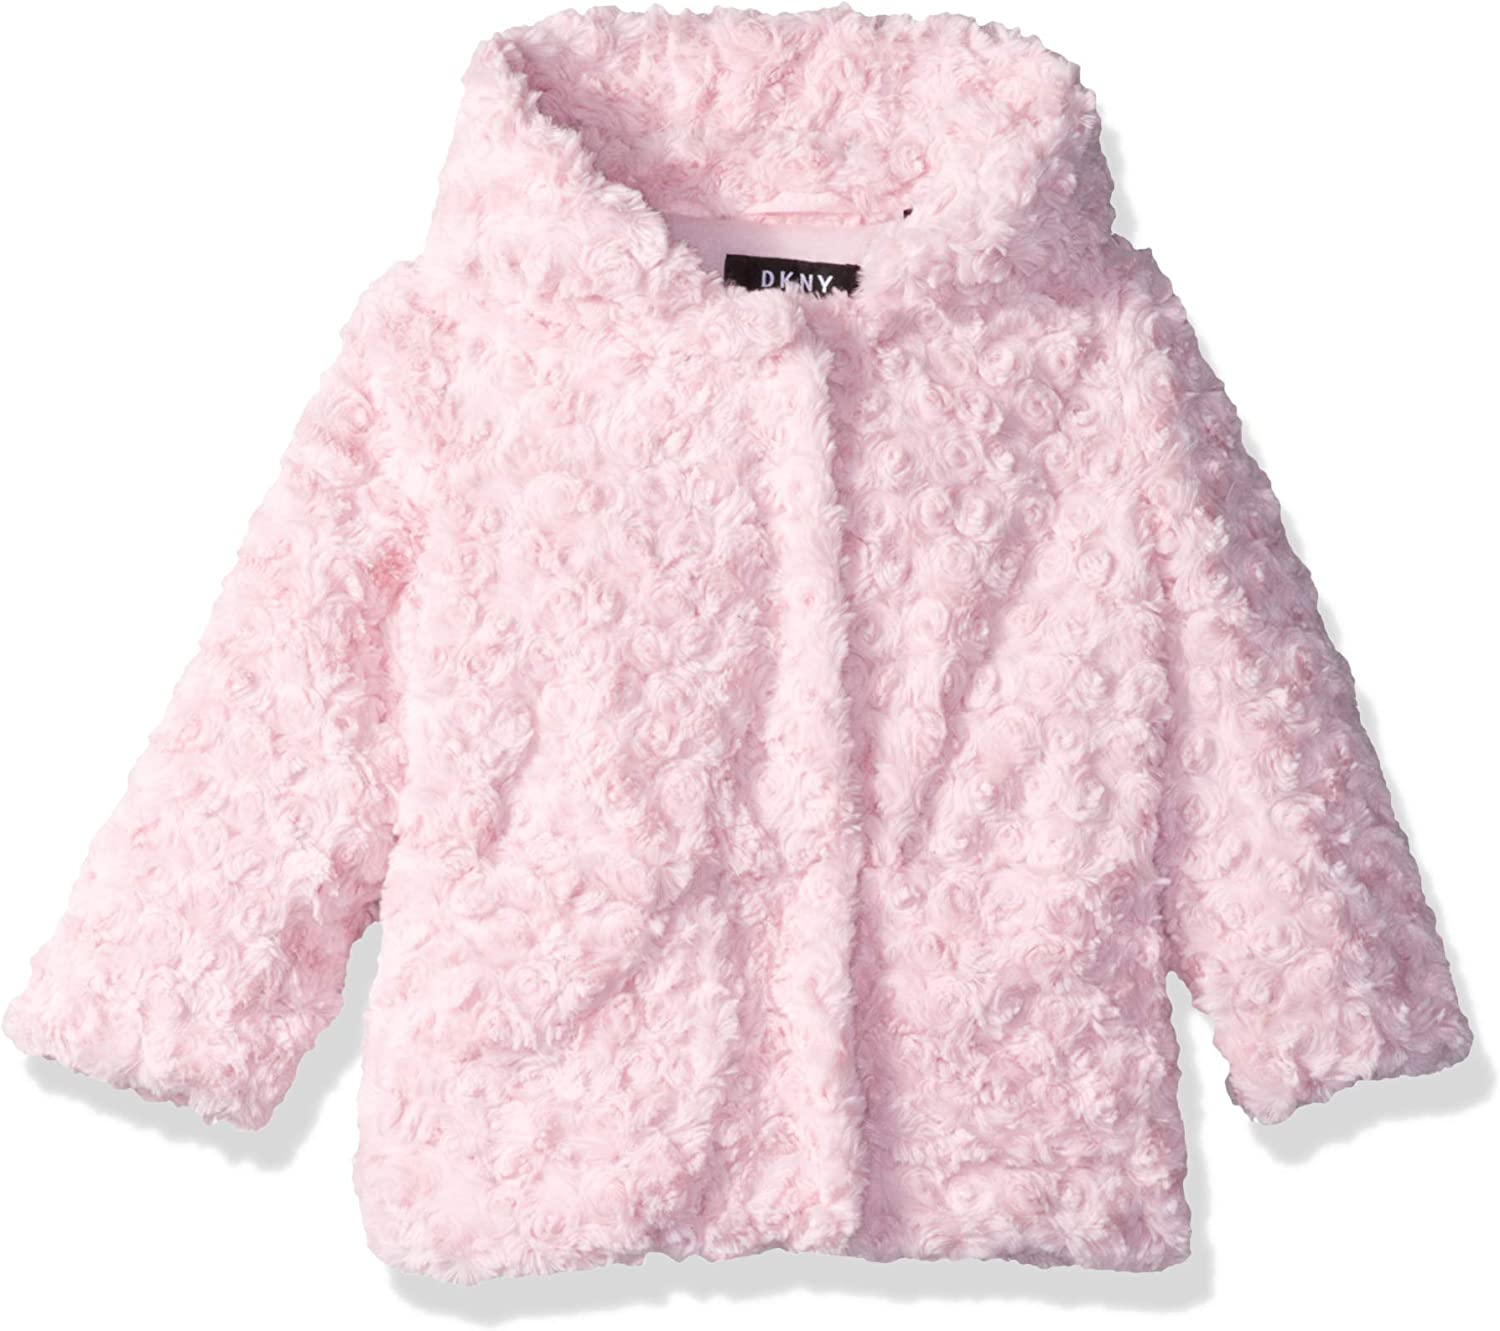 DKNY Baby Girls Faux Fur Jacket with Hood